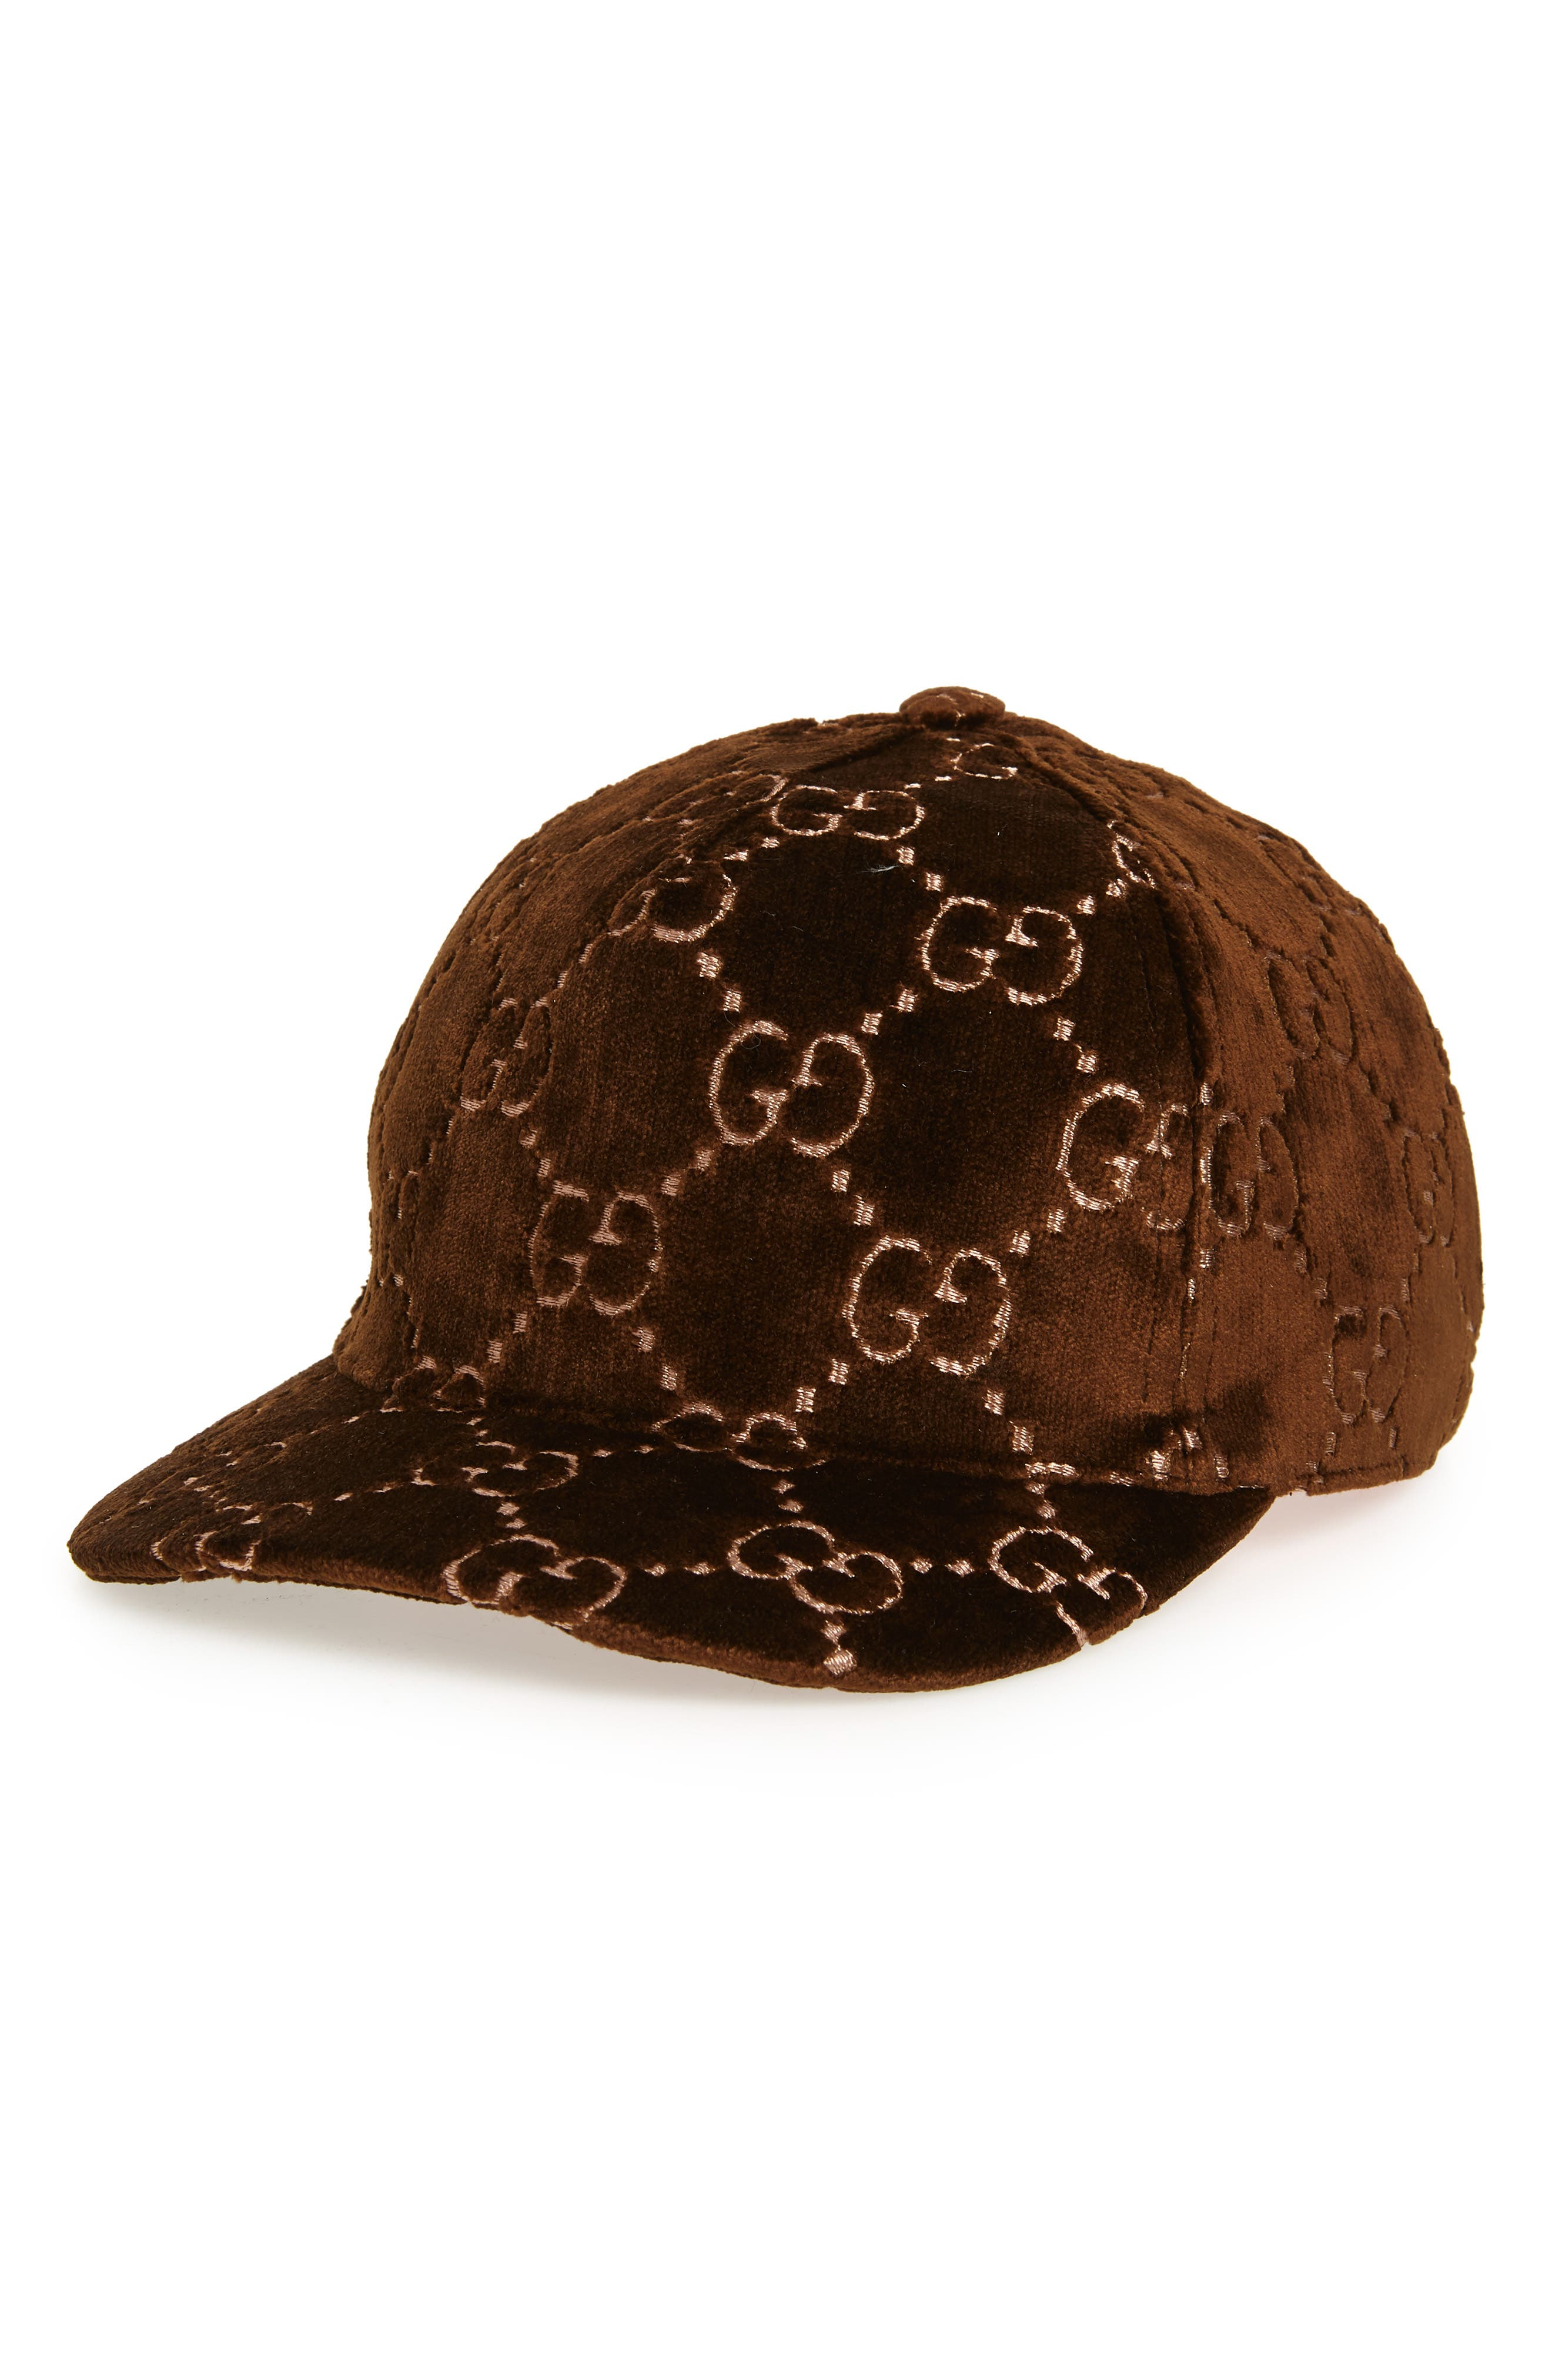 6702eb247ea15 Gucci Hats for Women